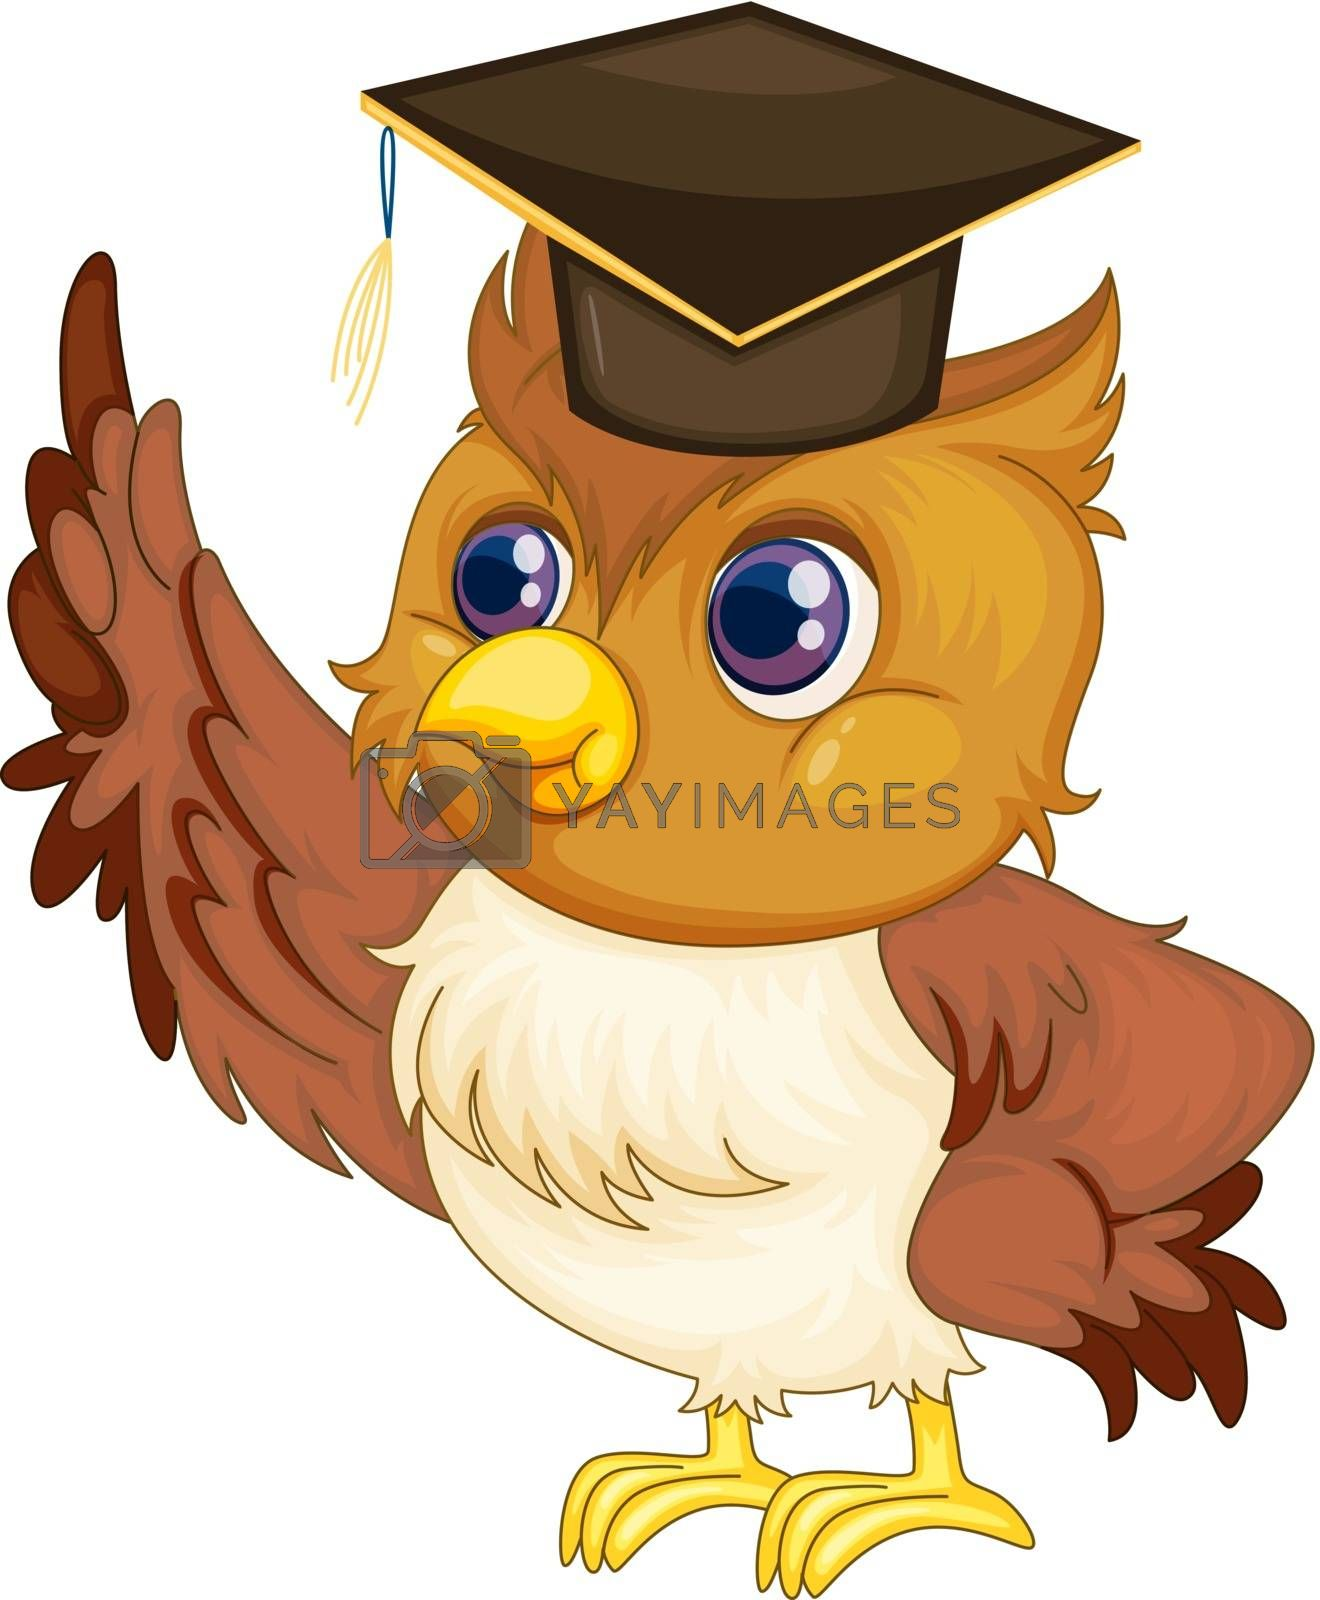 Illustration of an old wise owl